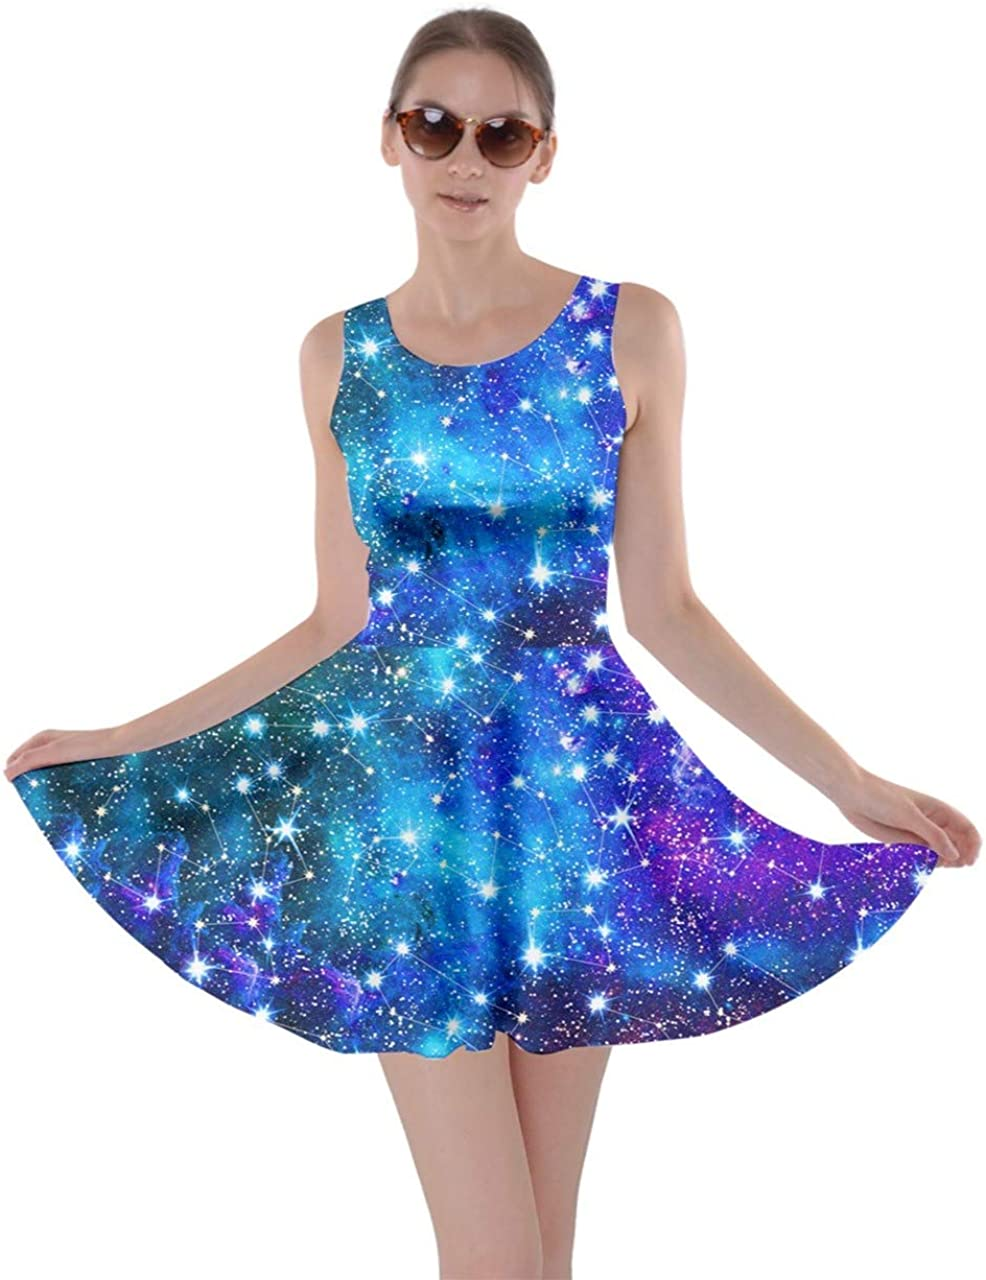 CowCow Womens Starry Night Sky Moon Stars Space Constellations Planets Mrs Frizzle Skater Dress, XS-5XL